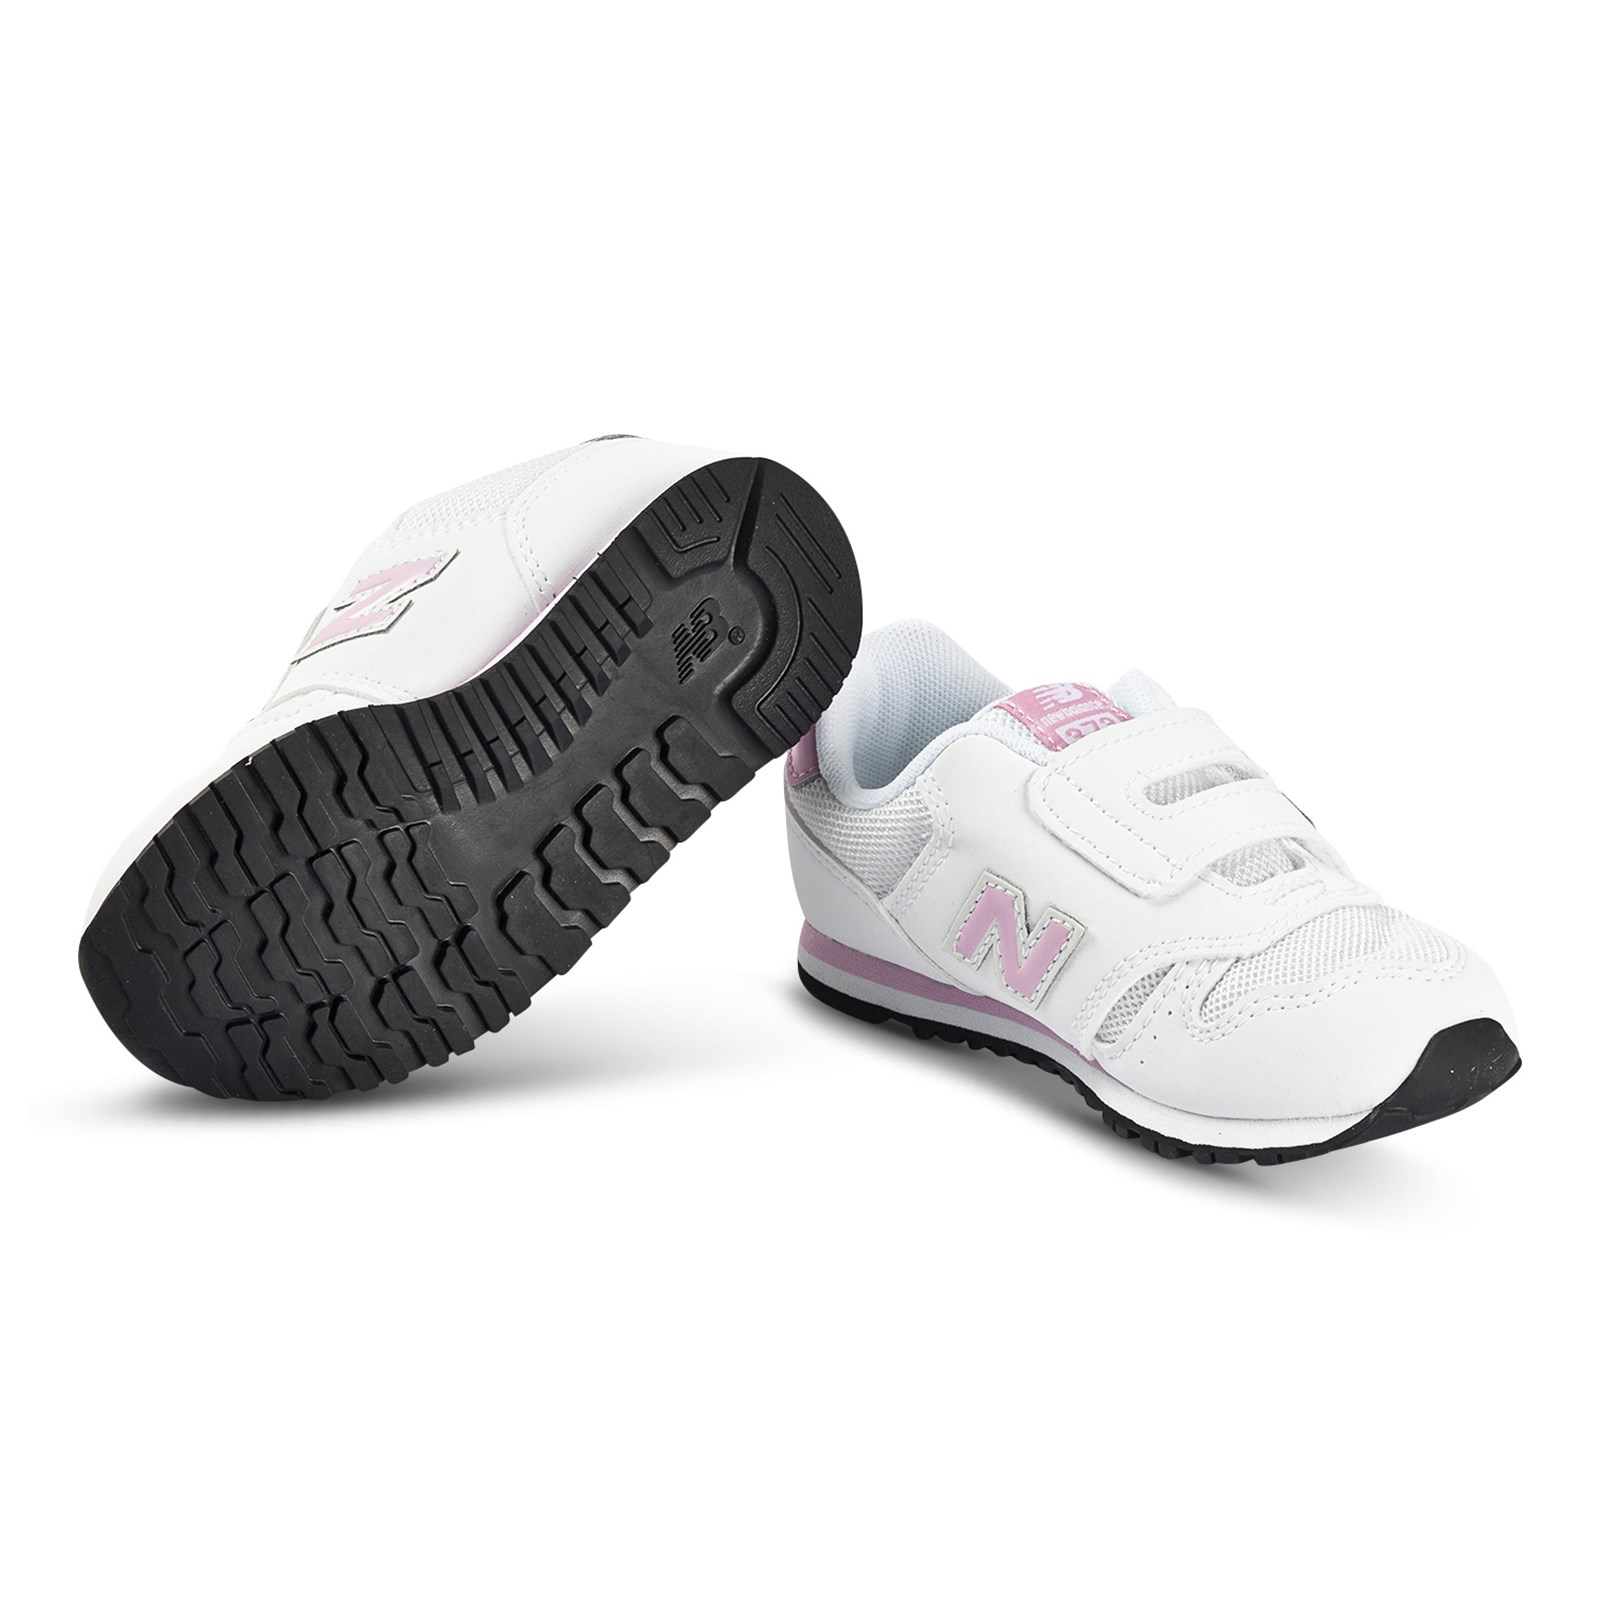 New Balance - 373 Velcro Sneakers White and Pink - Babyshop.com